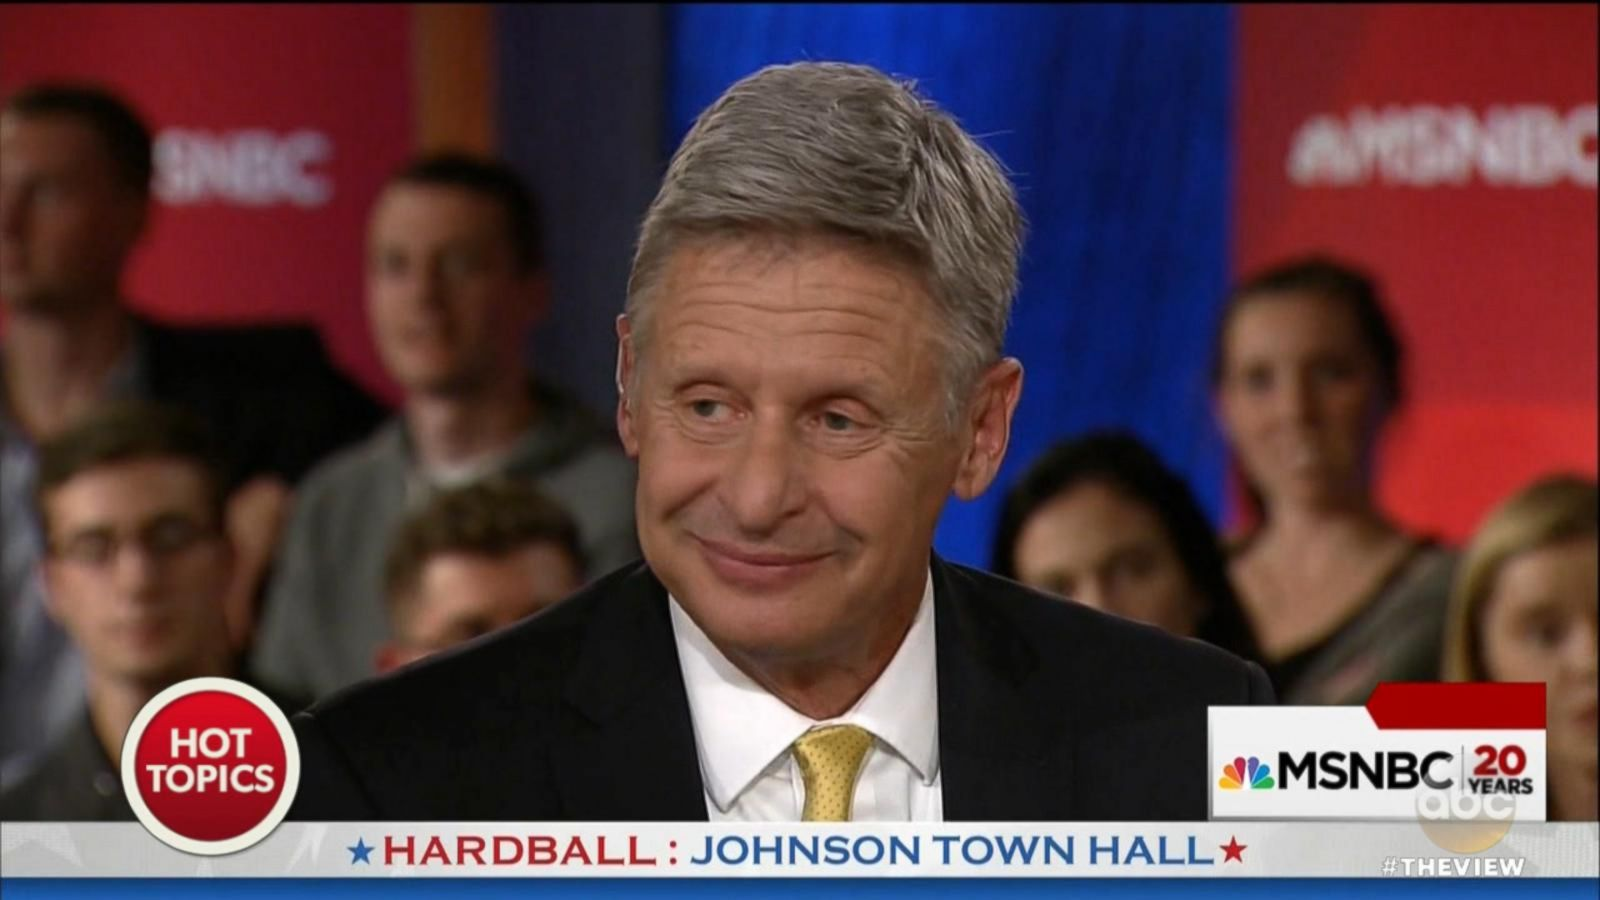 VIDEO: Gary Johnson Has Another 'Aleppo Moment,' is Unable to Name Foreign Leader